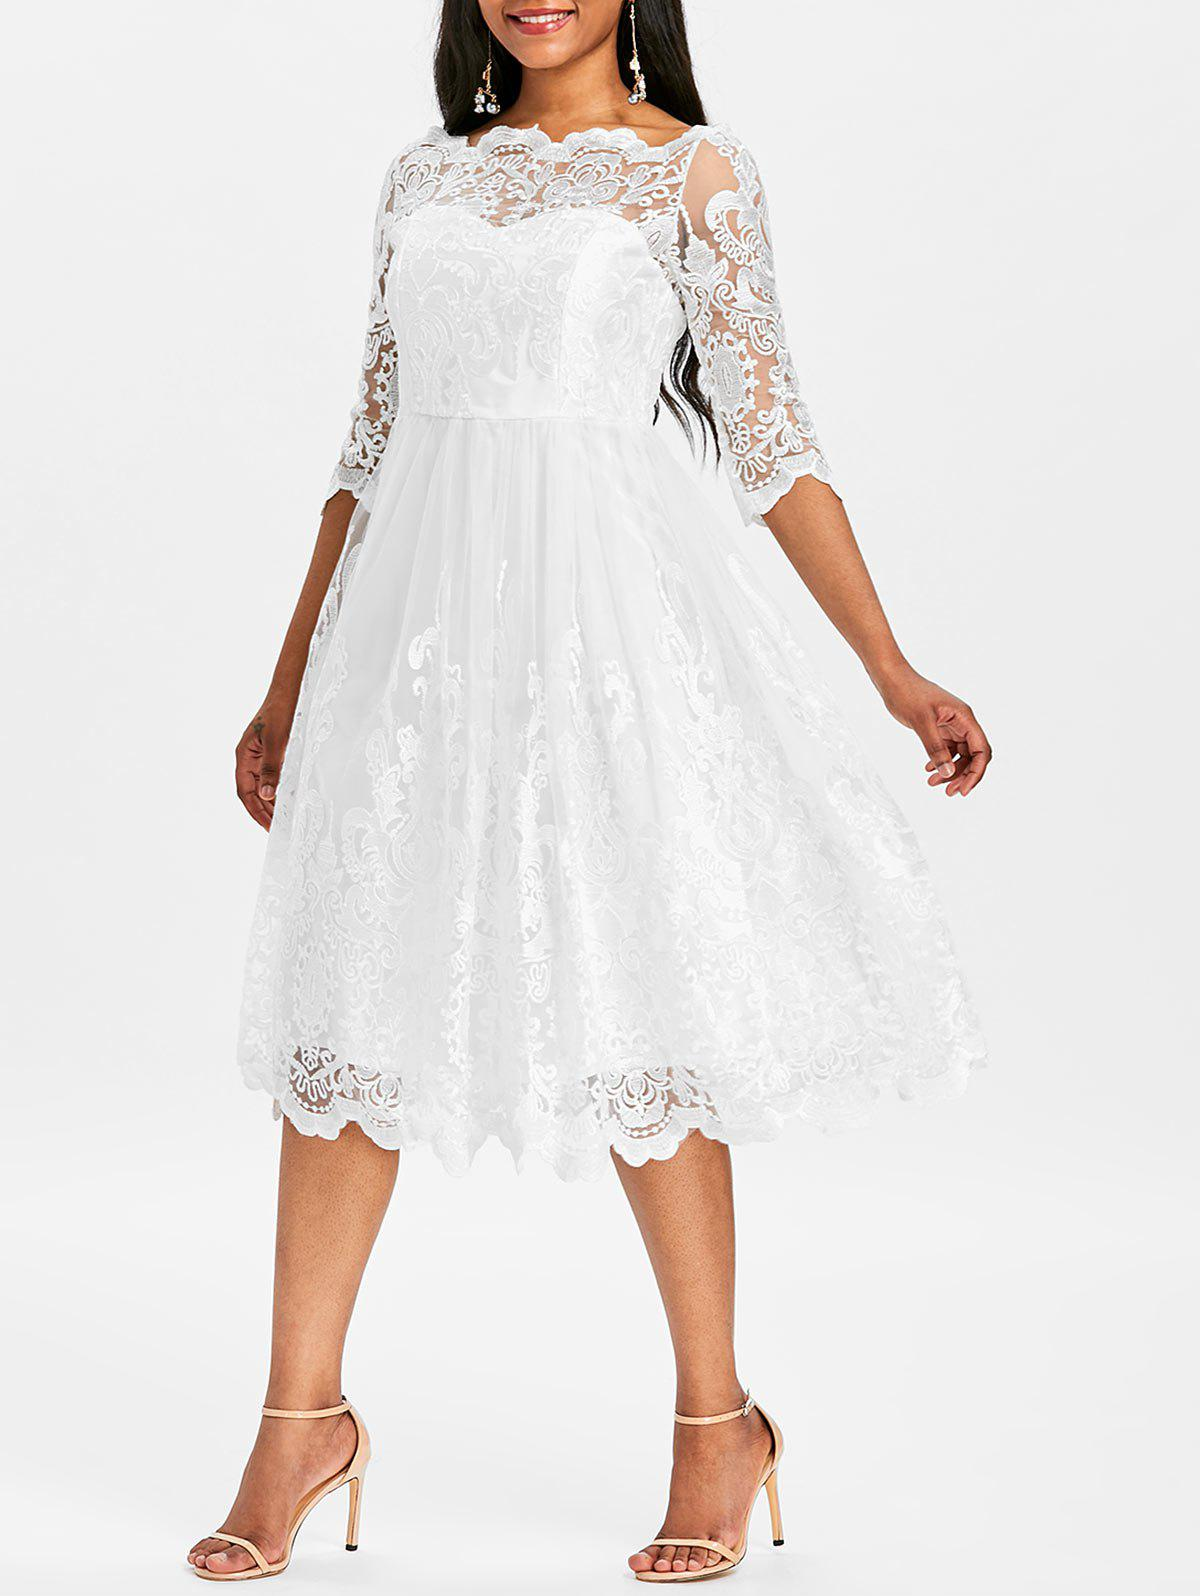 Boat Neckline Wedding Lace Dress - WHITE M